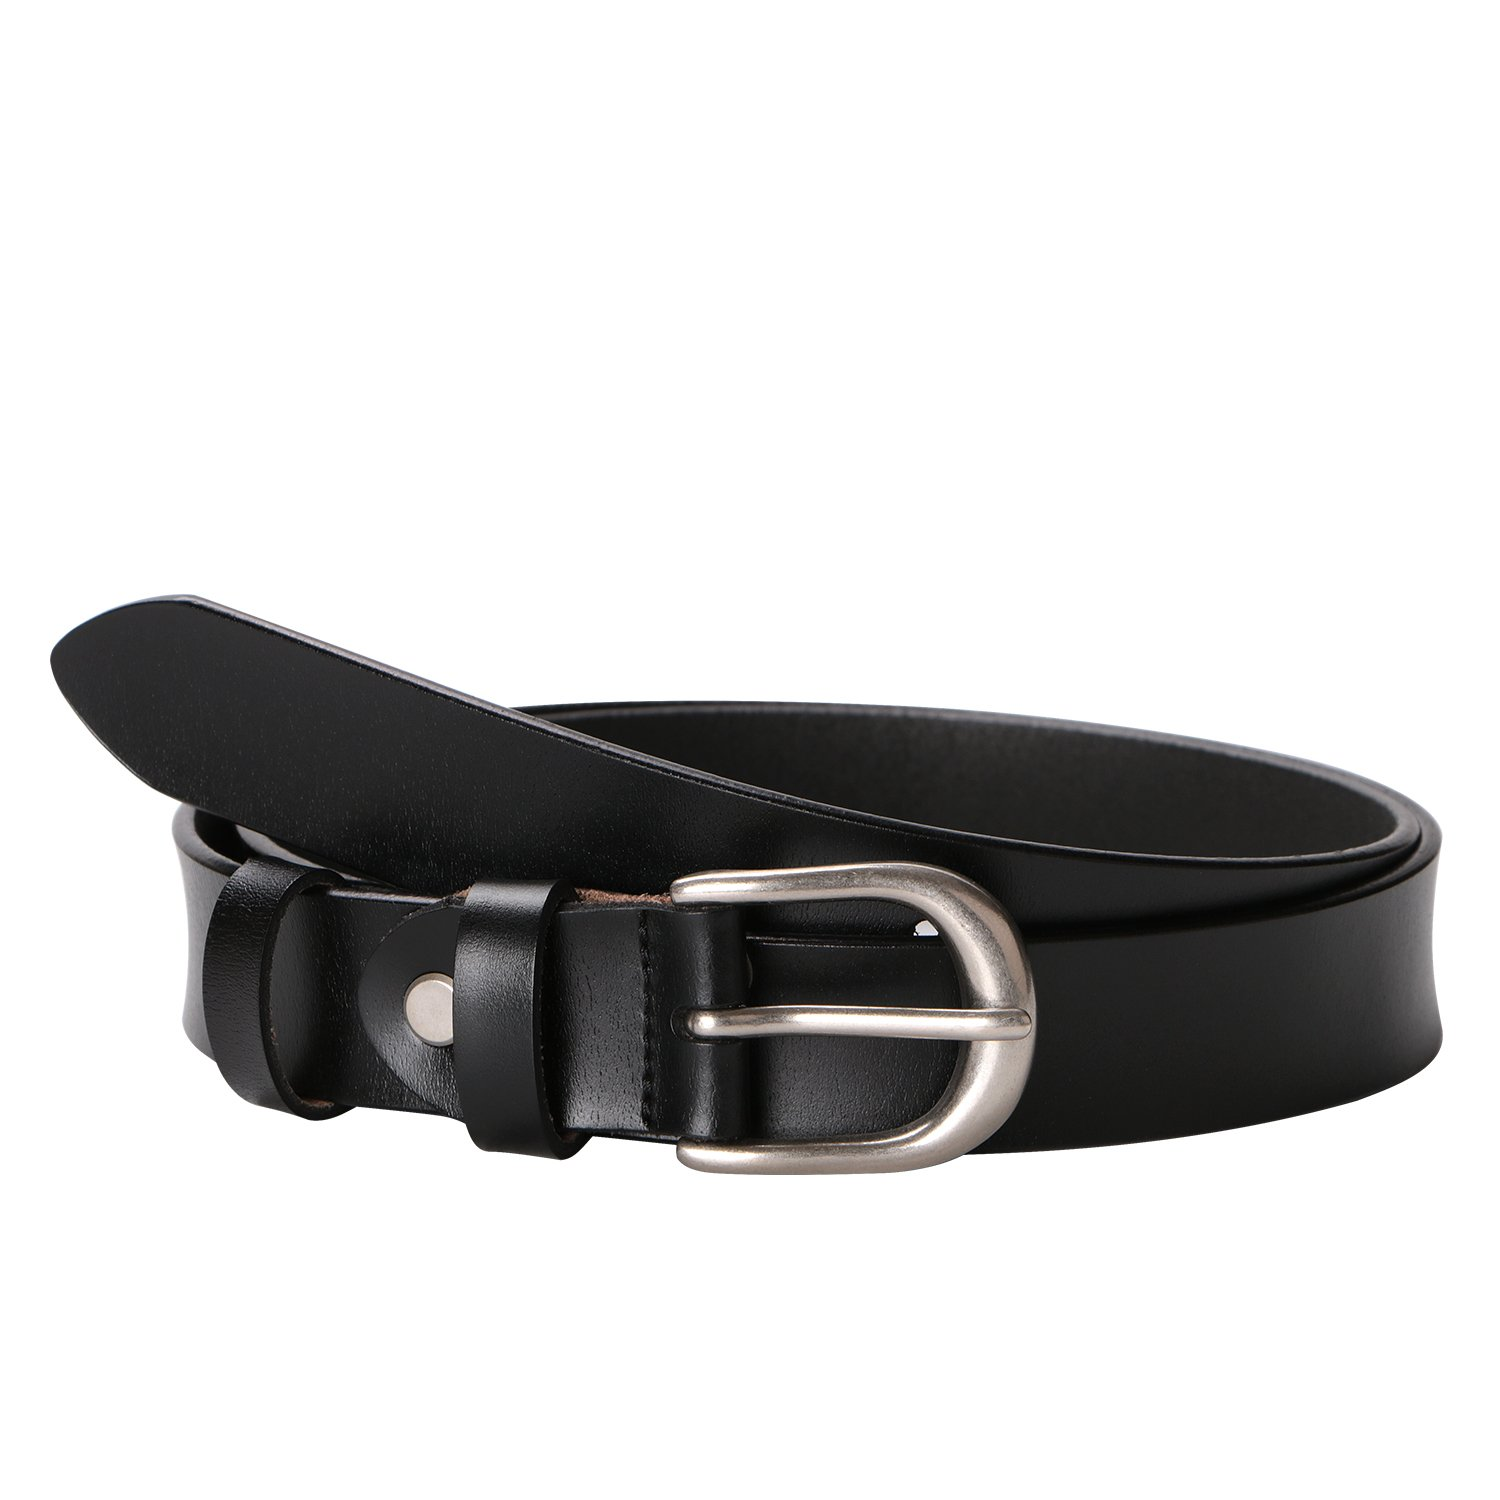 MoAnBee Women Leather Belt 28mm with Classic Polished Buckle, Solid Color Cowhide Leather Belt for Jeans